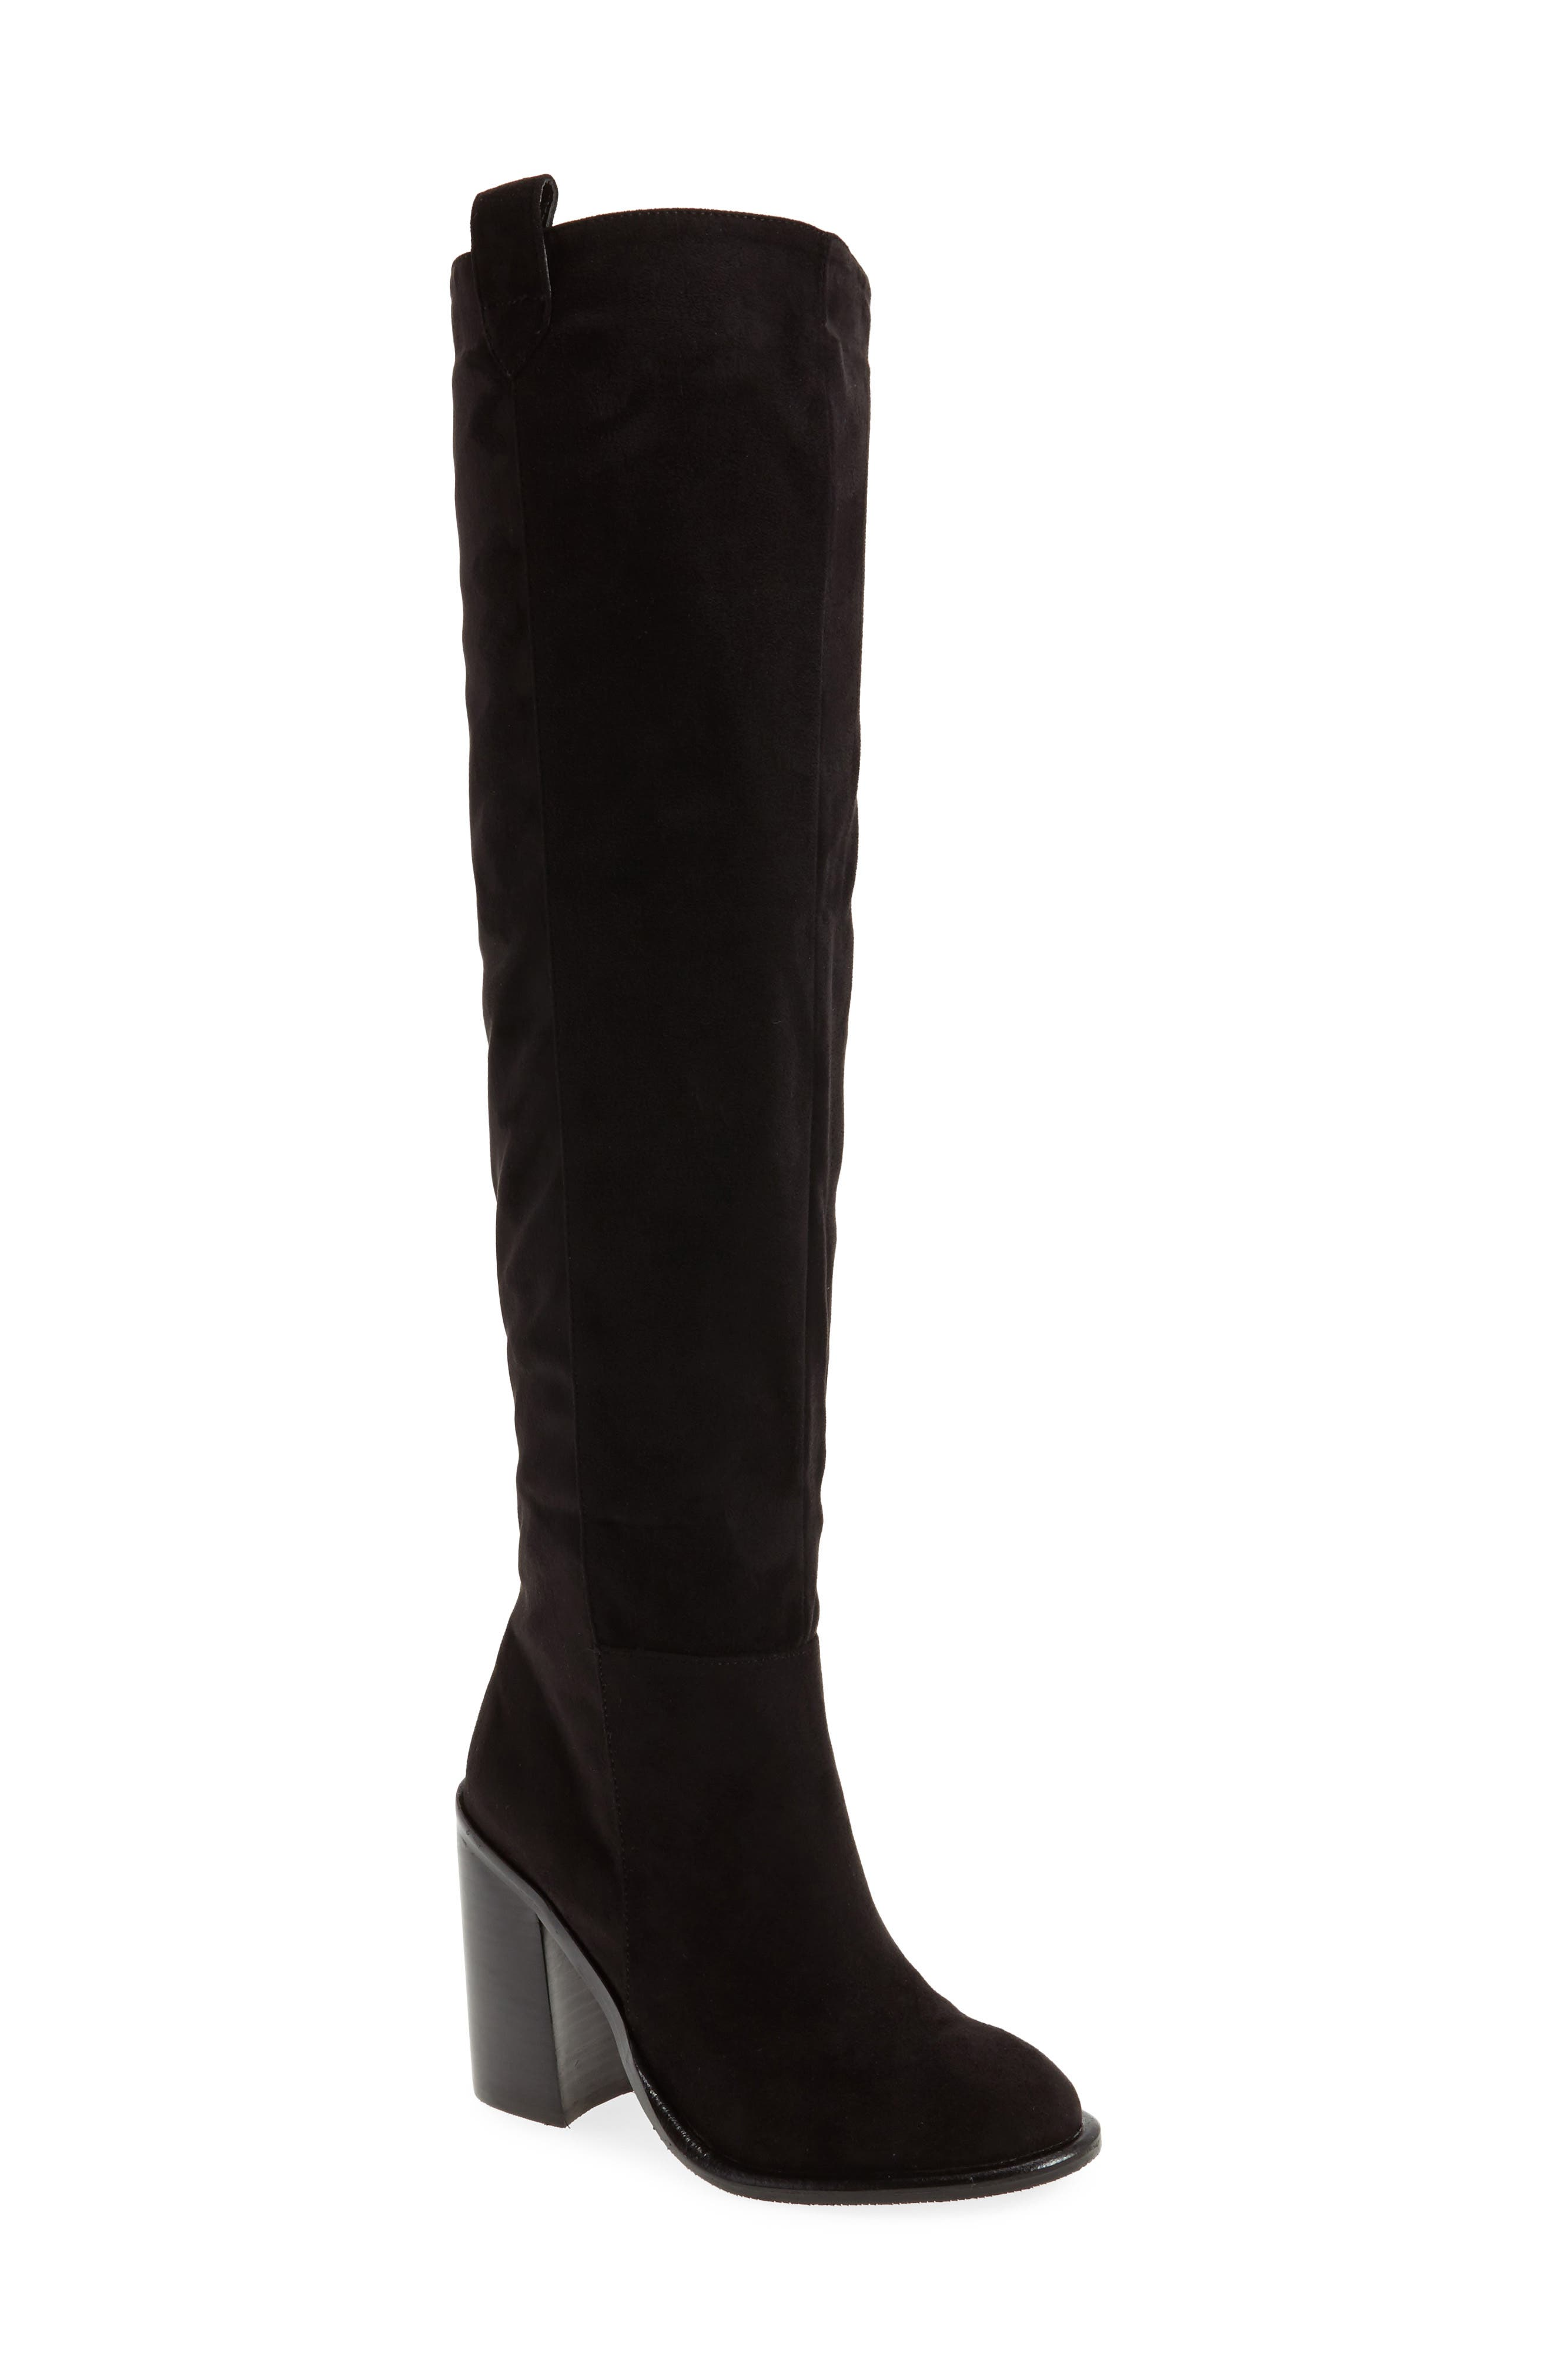 Nate Over the Knee Boot,                         Main,                         color, Black